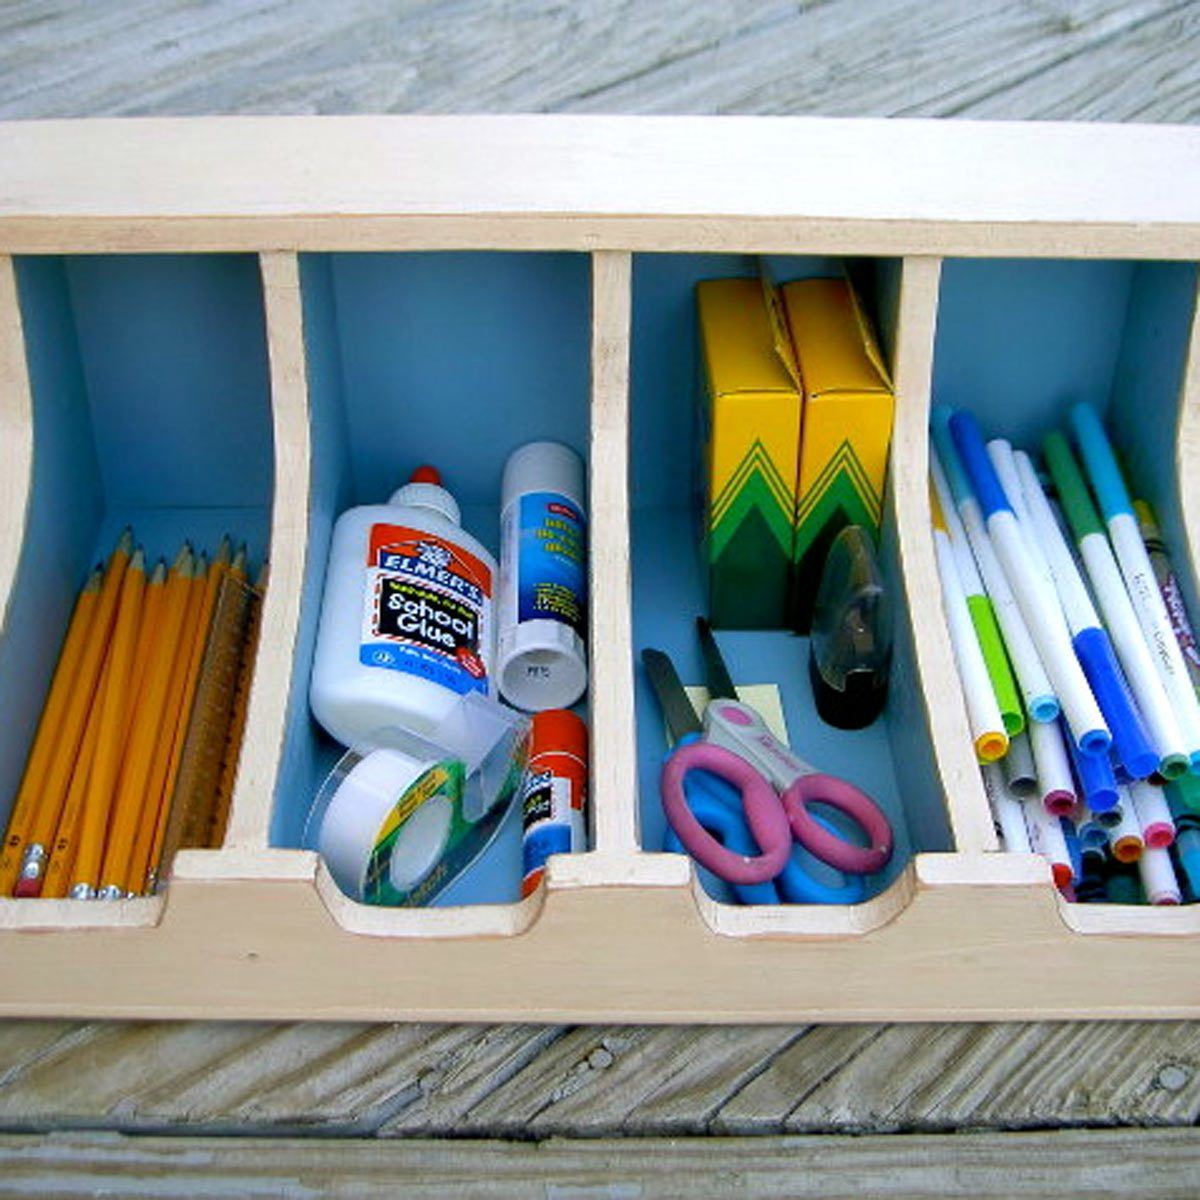 aadfh17aug019aa_08 school supplies organization storage in silverware tray